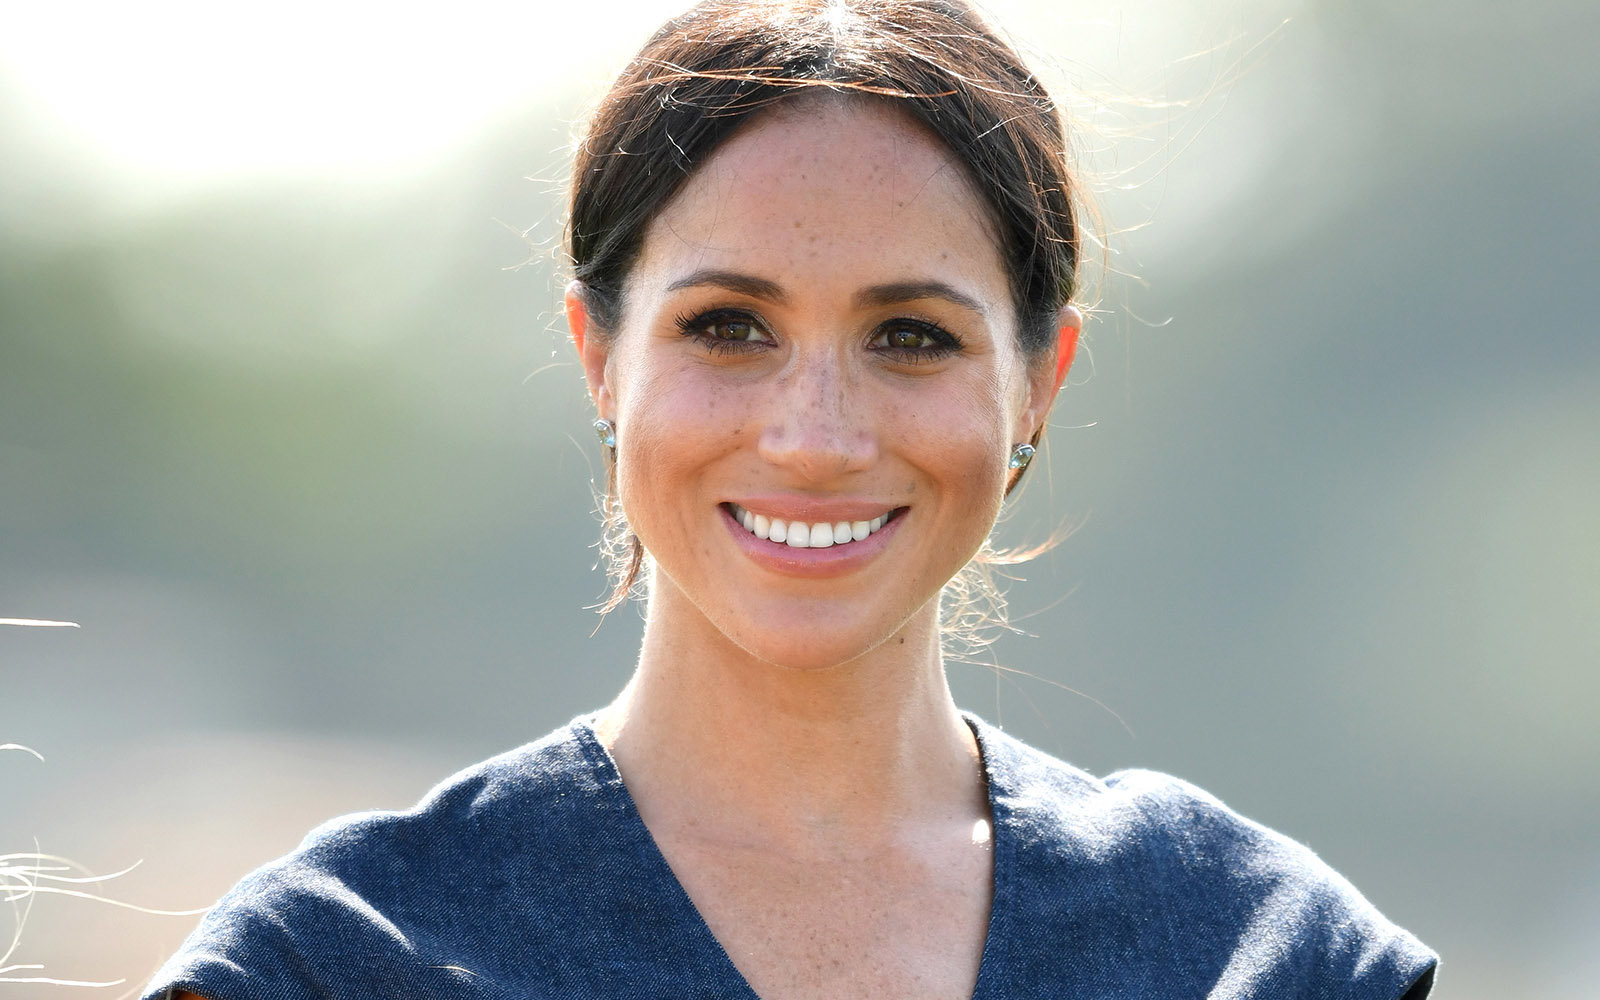 meghan-markle-favorite-beauty-travel-MEGBEAUTYTRAVEL0918